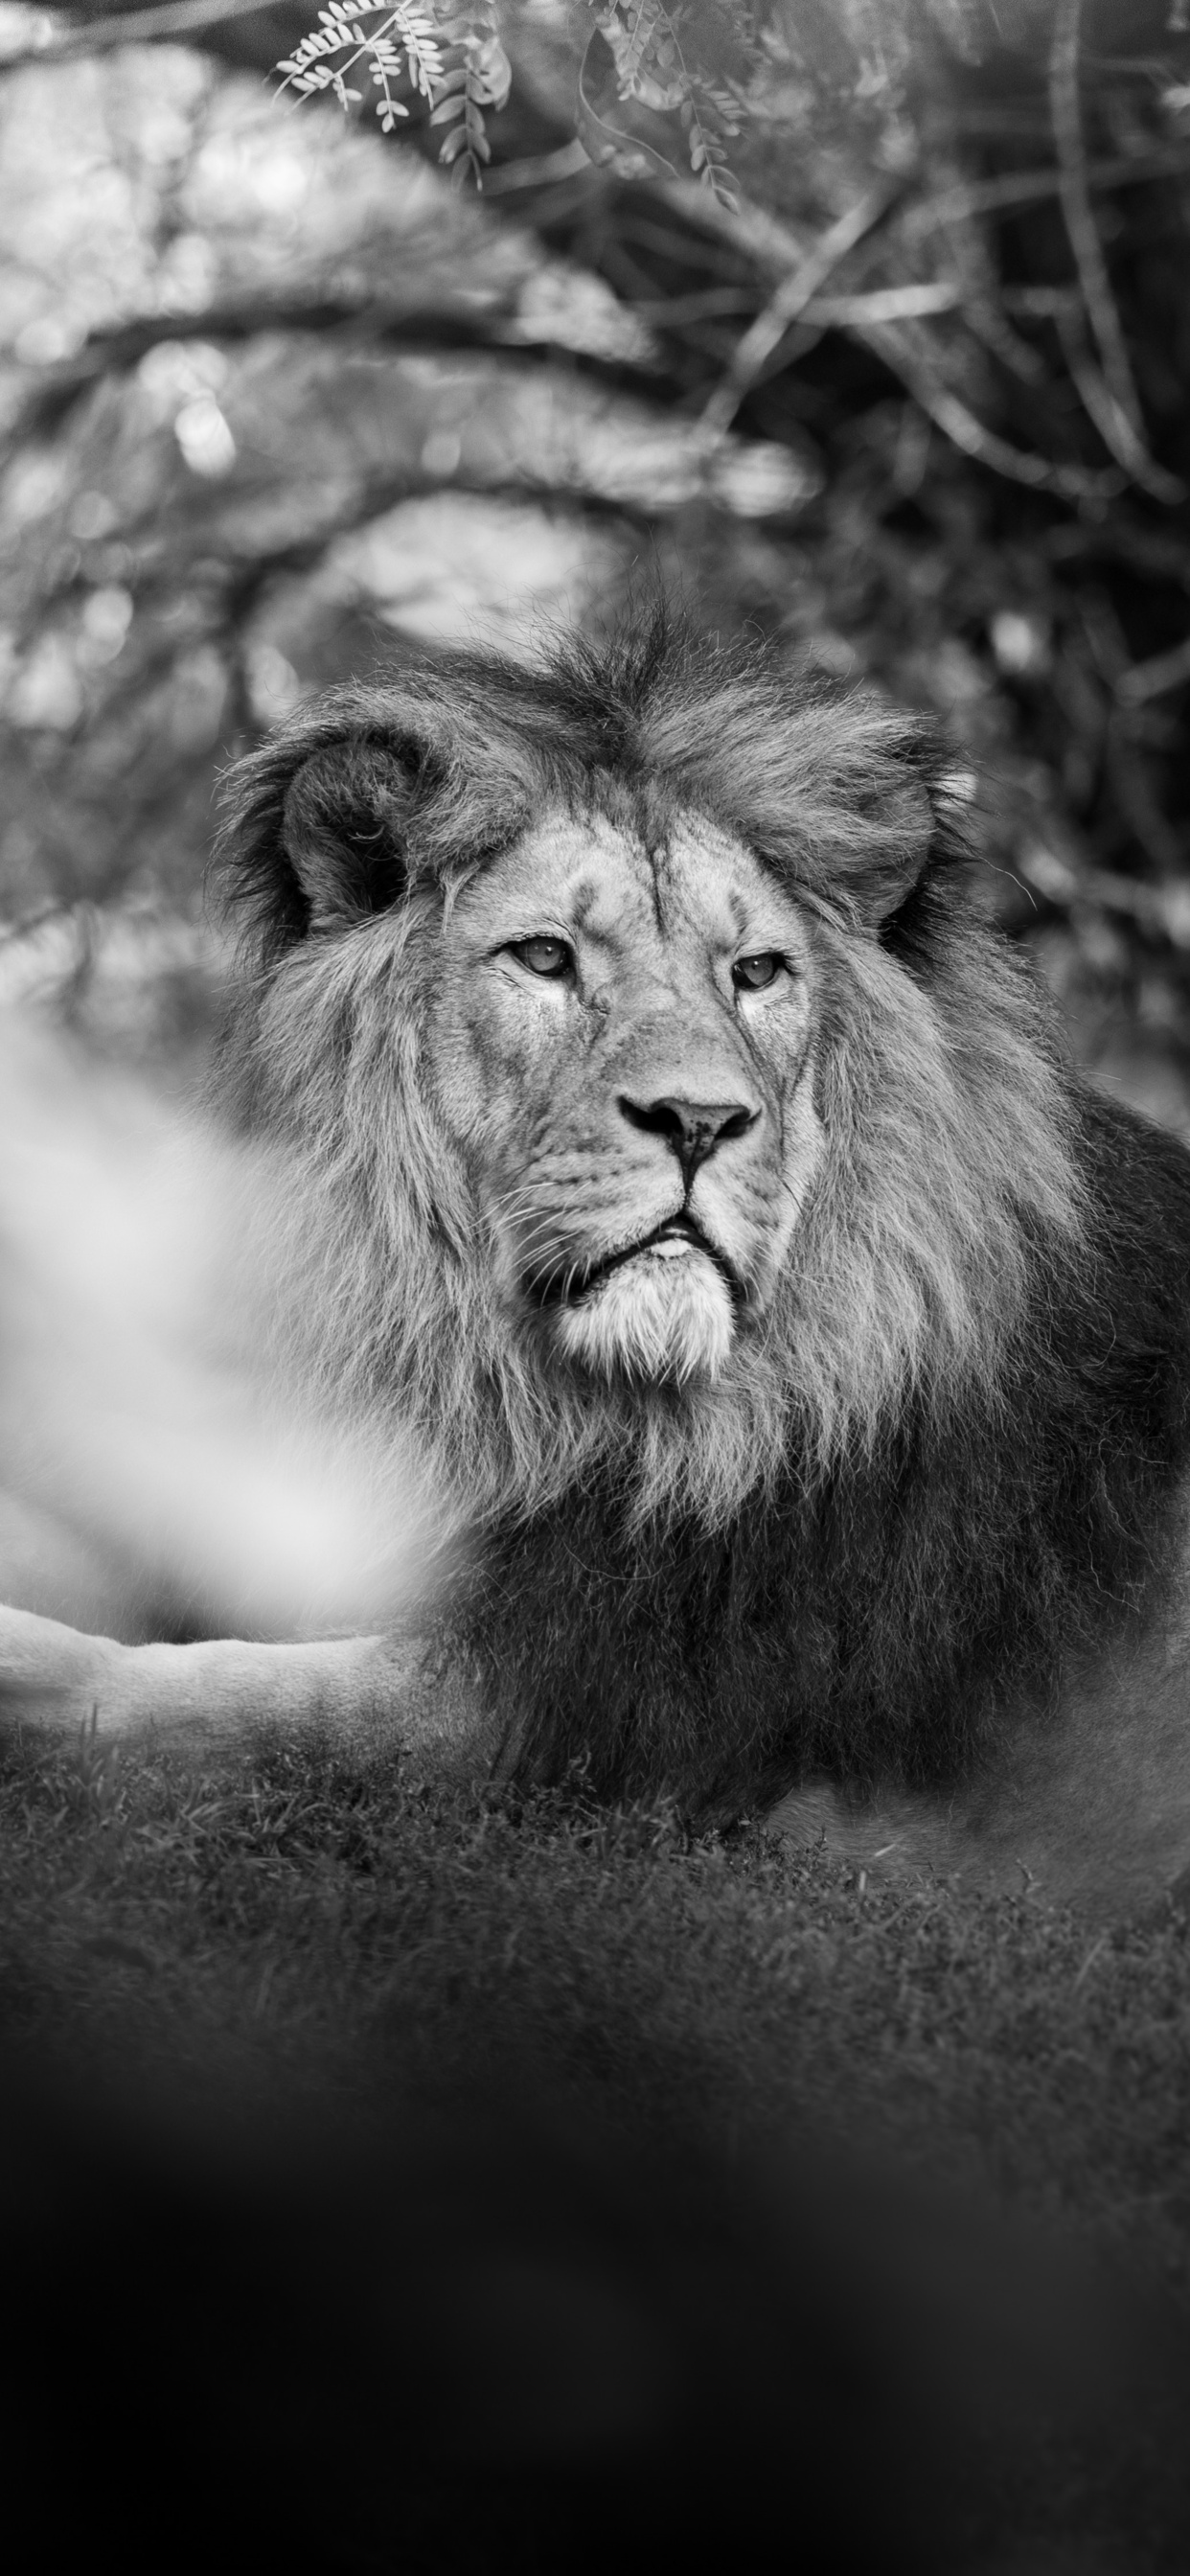 1242x2688 Monochrome Lion 5k Iphone Xs Max Hd 4k Wallpapers